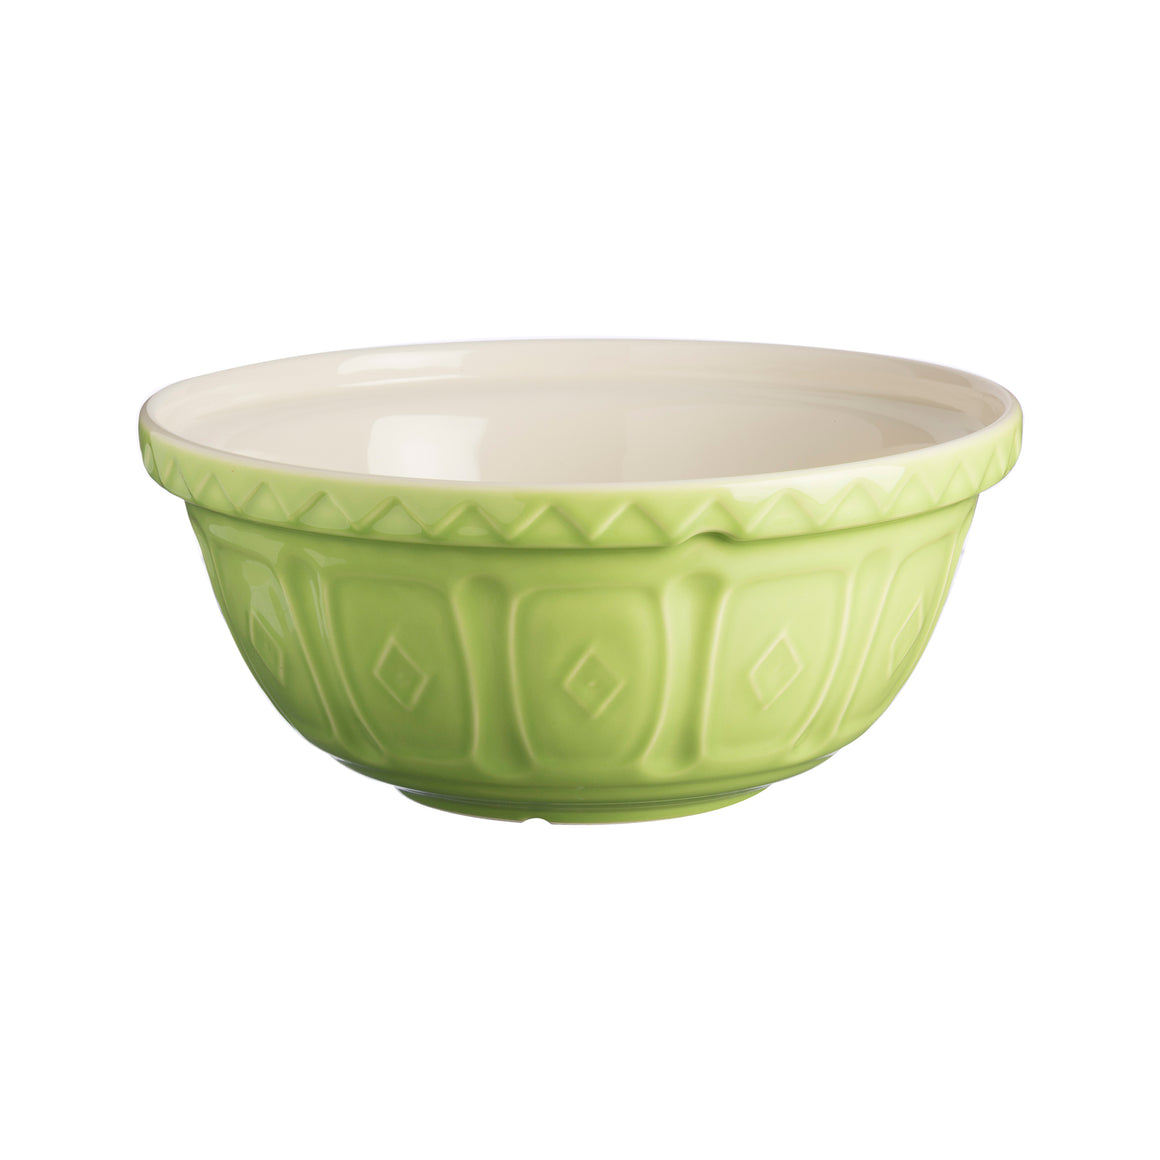 Colour Mix S12 Bright Green Mixing Bowl 29cm - Mason Cash - 2001.835